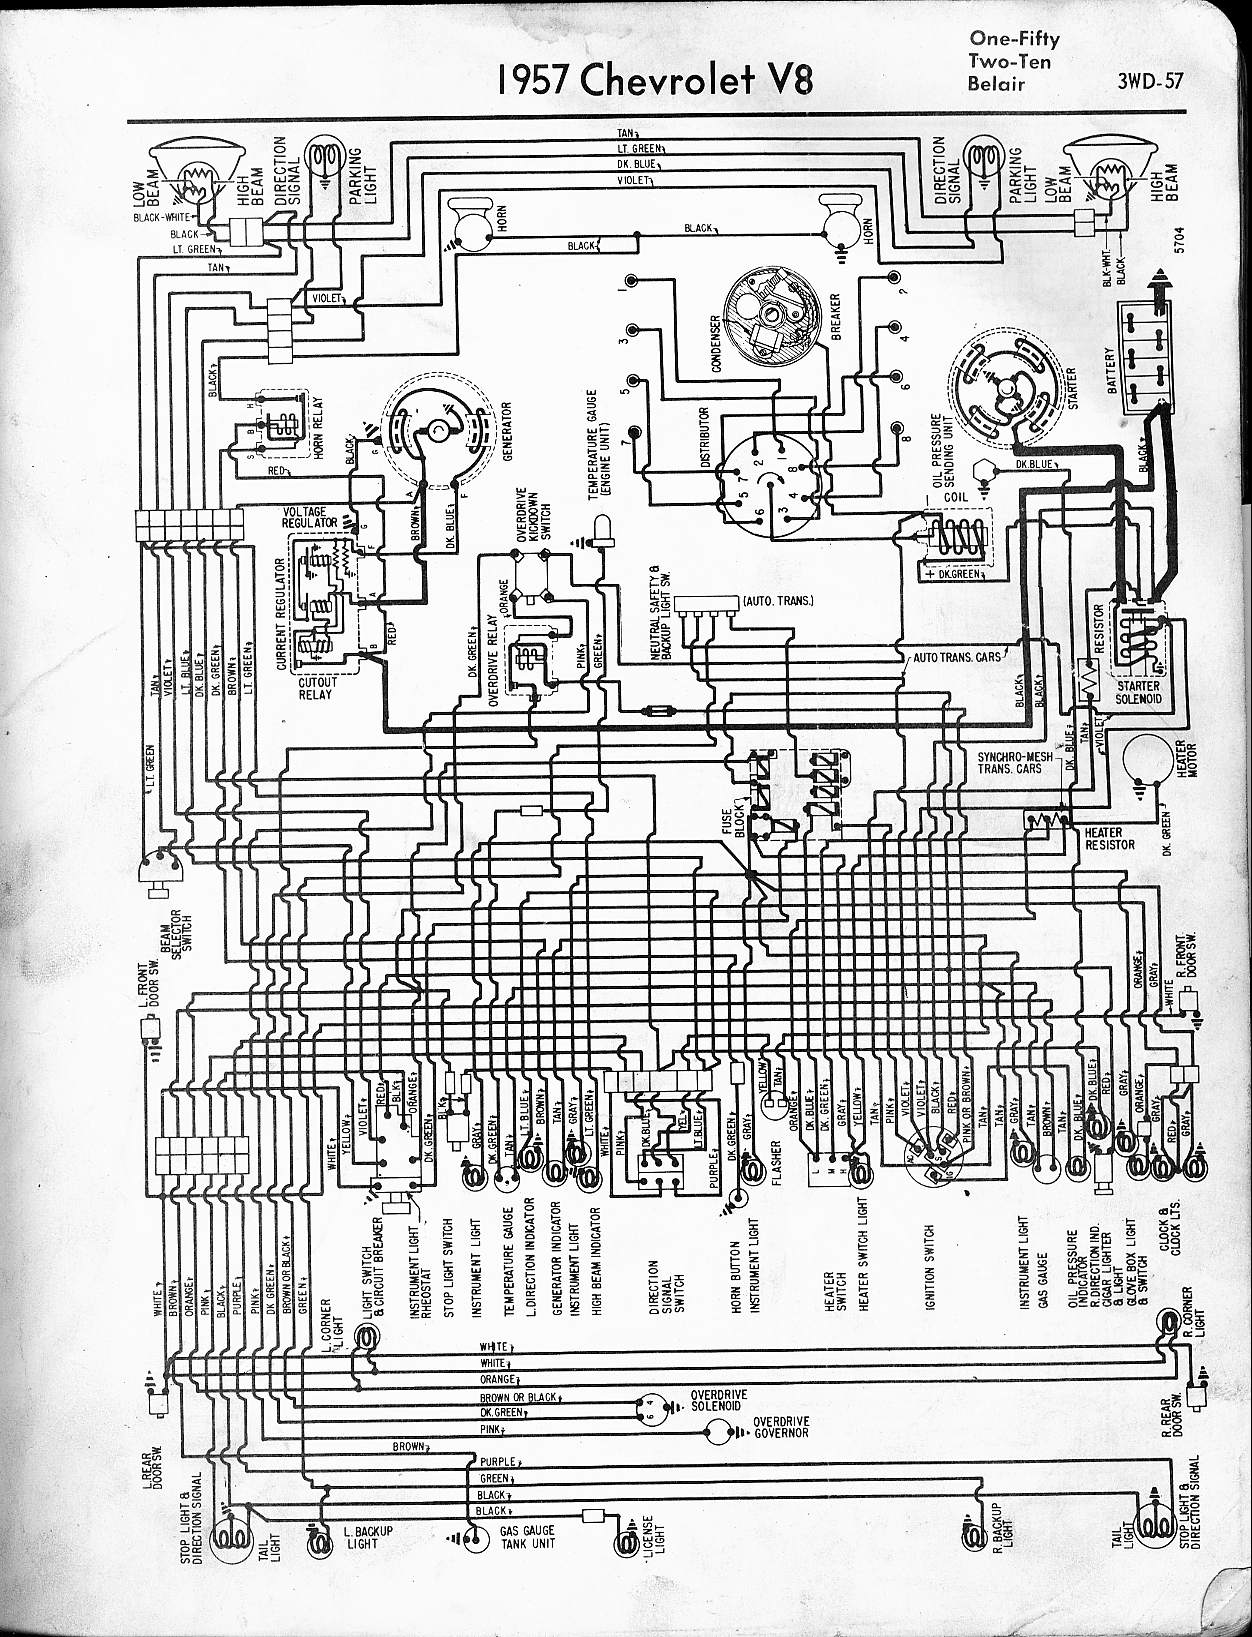 MWireChev57_3WD 057 57 65 chevy wiring diagrams 1957 chevy headlight switch wiring diagram at et-consult.org